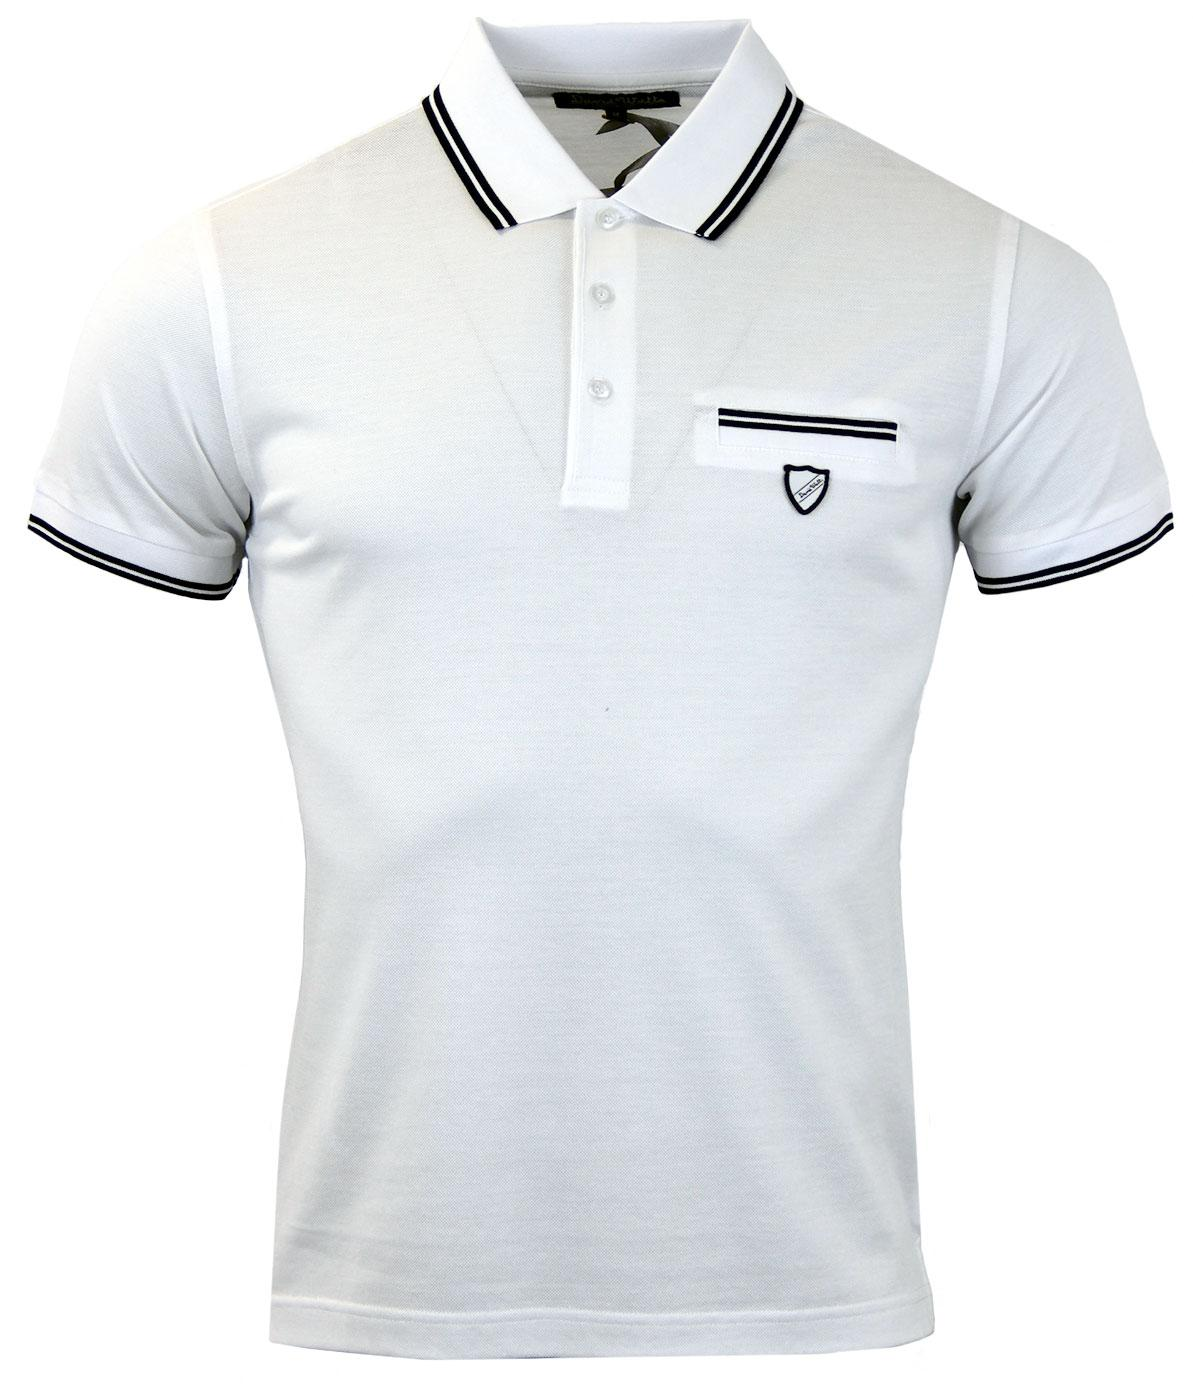 Delmar DAVID WATTS Mod Tailored Tipped Pocket Polo